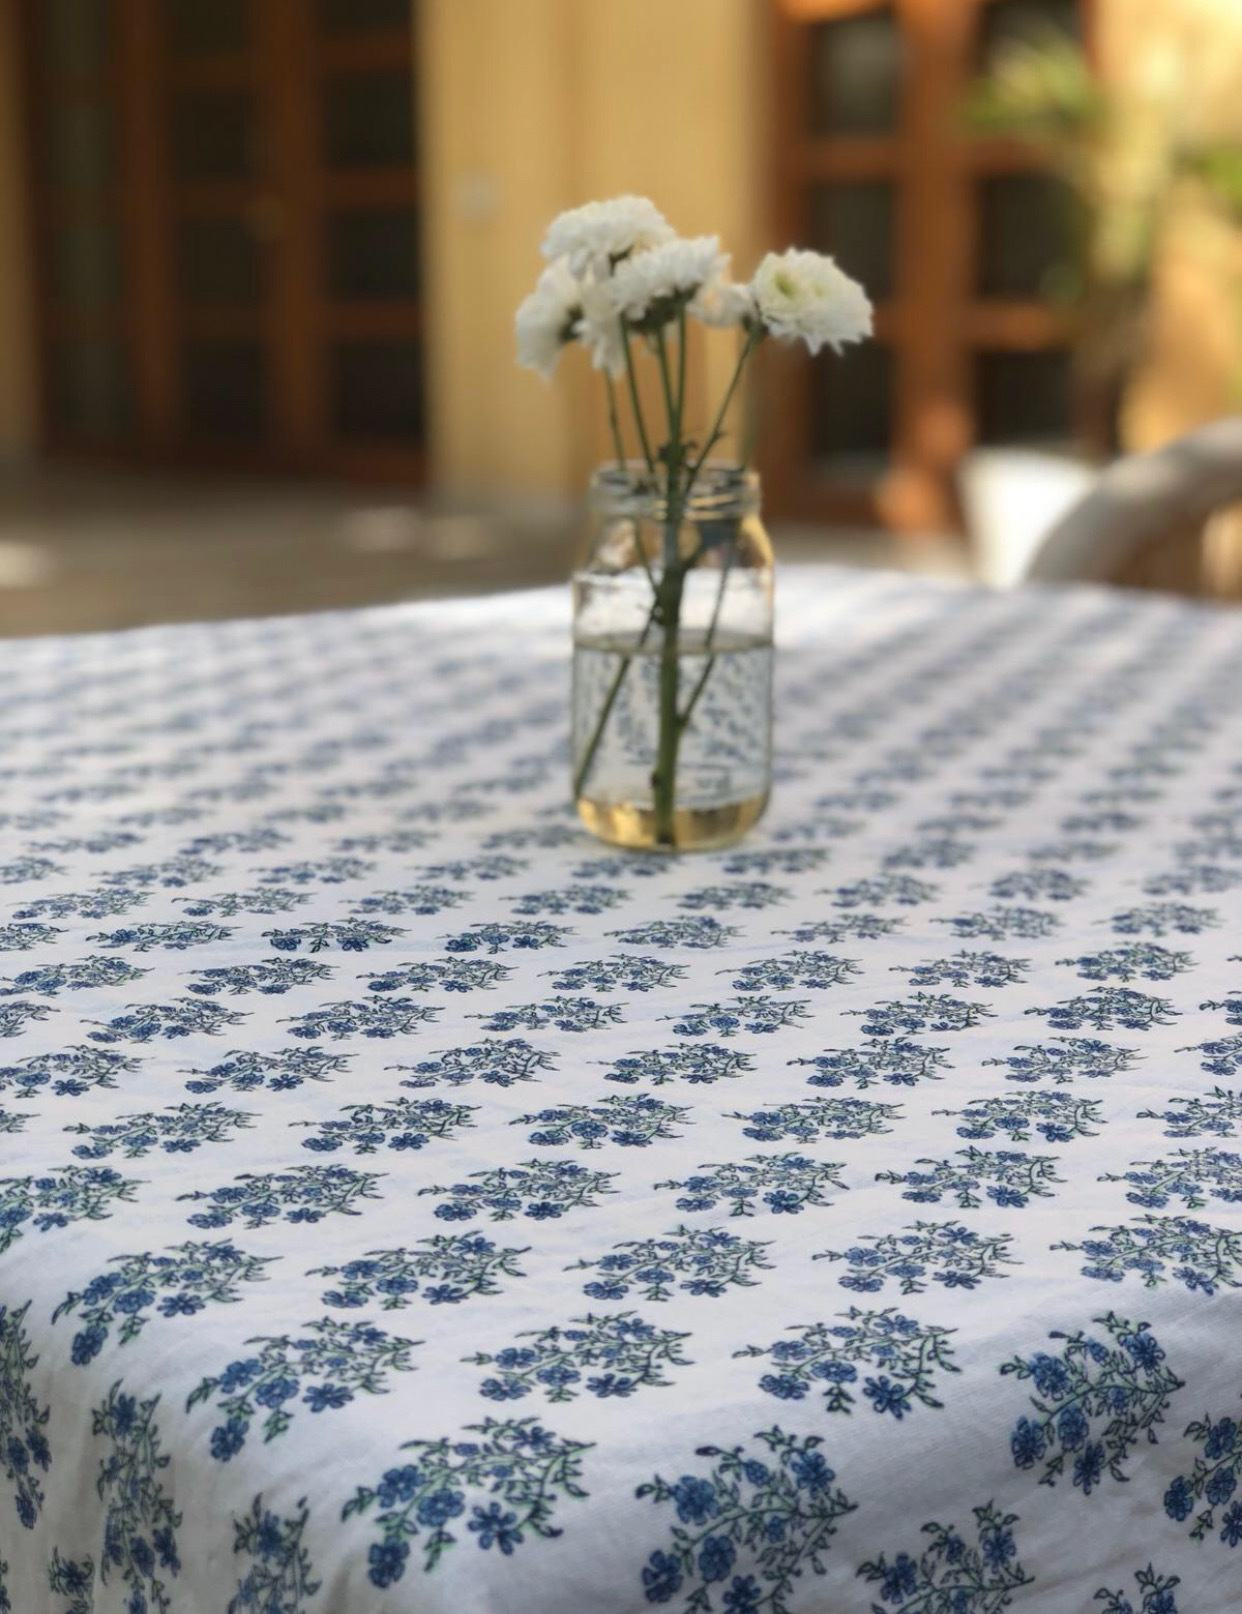 Mayo Flowers Green & Blue Tablecloth